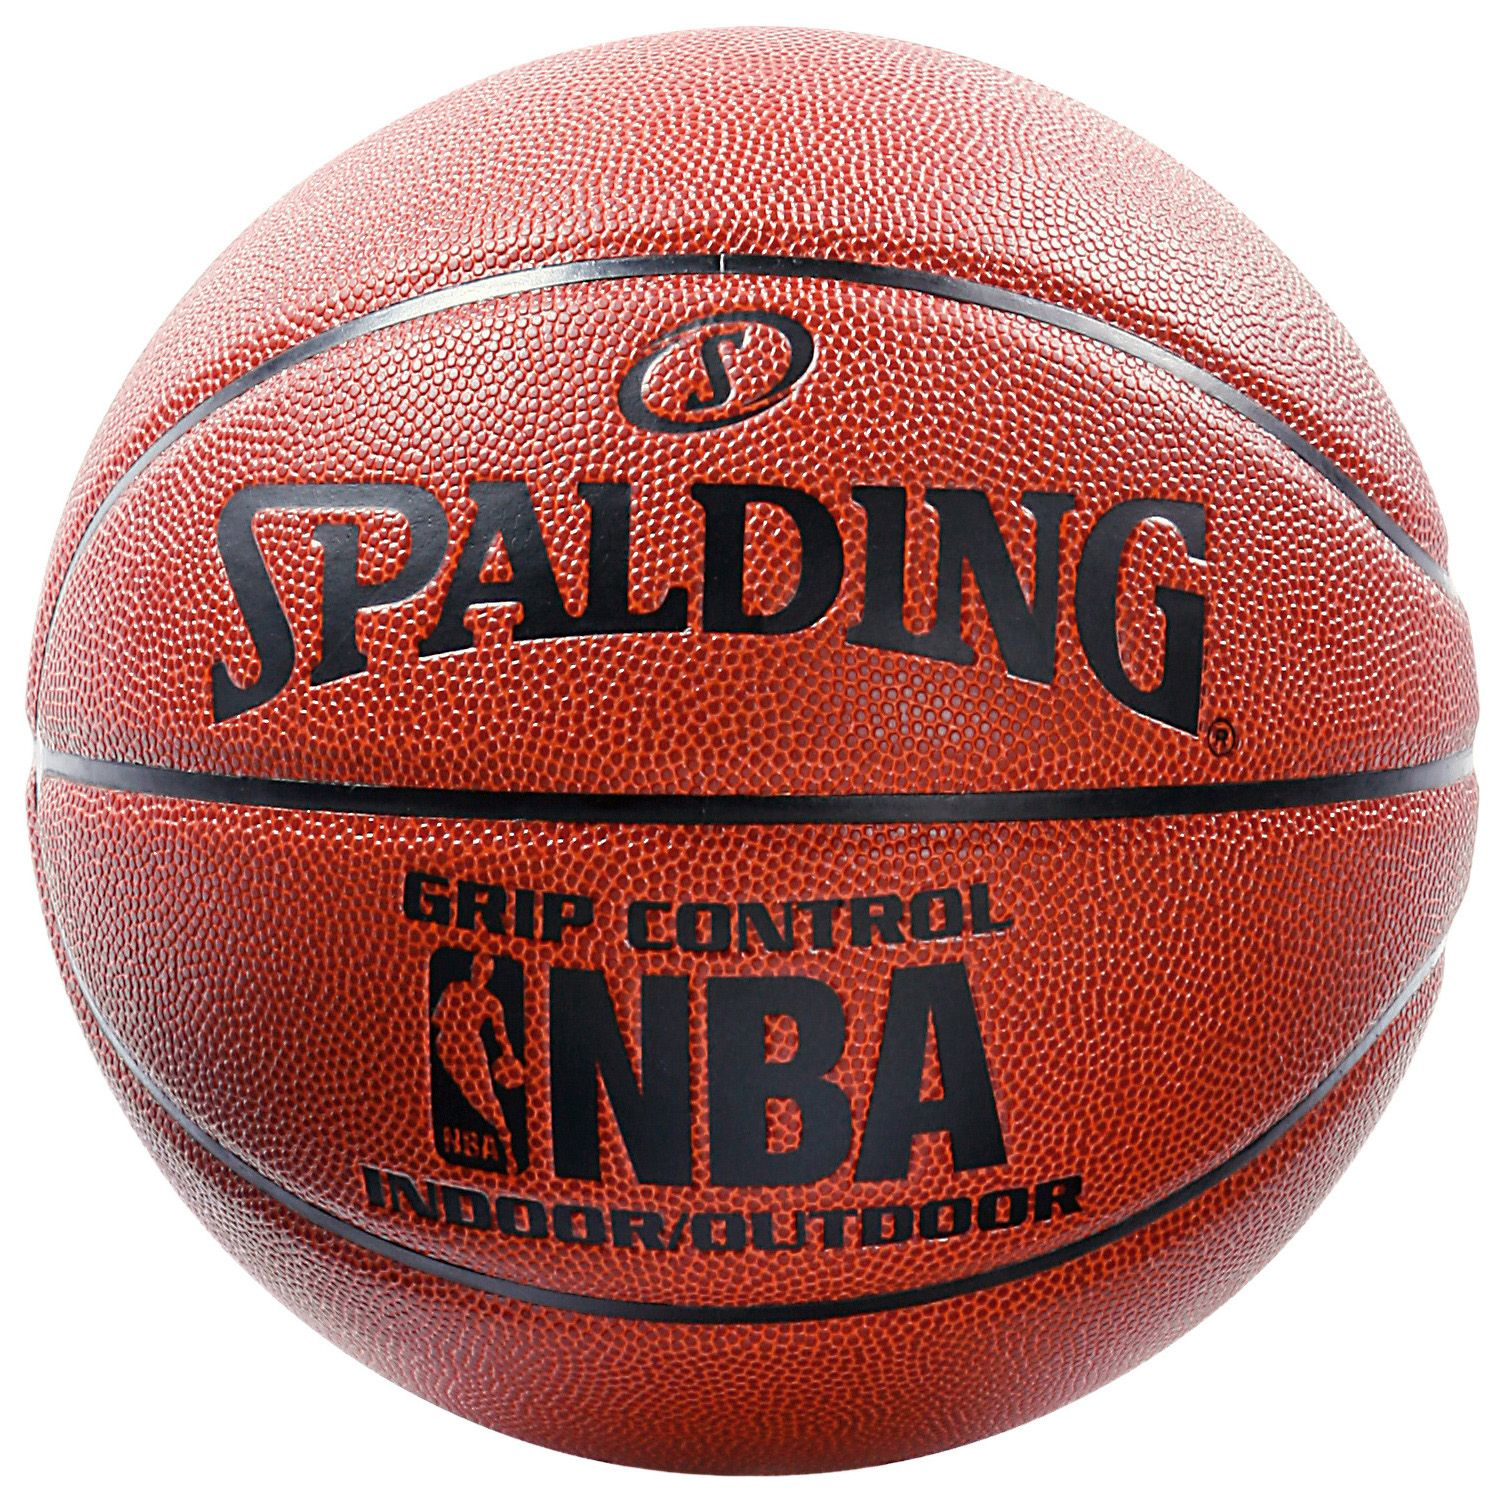 SPALDING  NBA Grip Control In/Out (74-221Z) Basketball